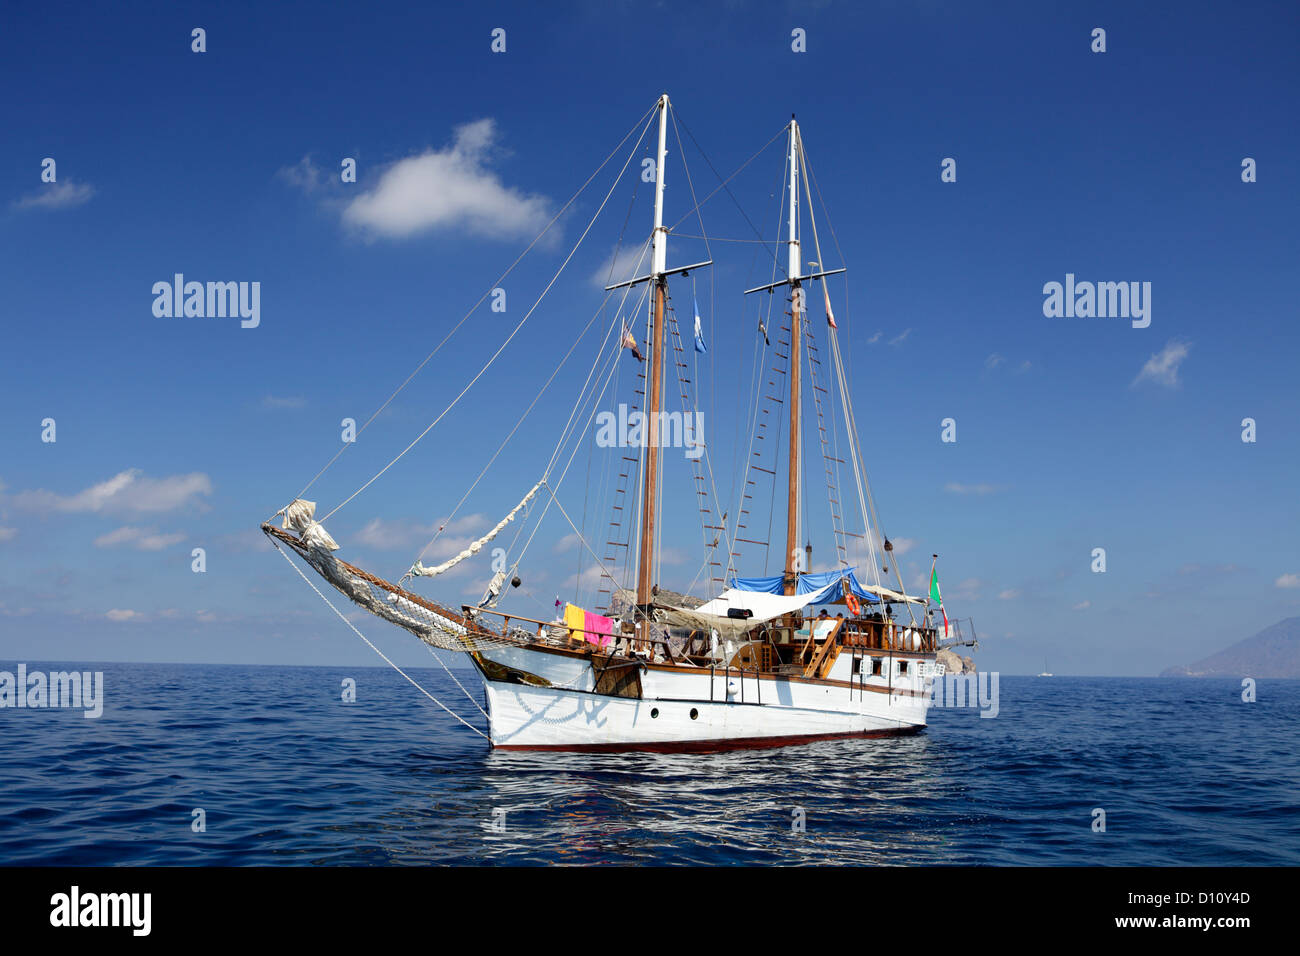 sailing ship at Aeolian Islands, Sicily, Italy - Stock Image